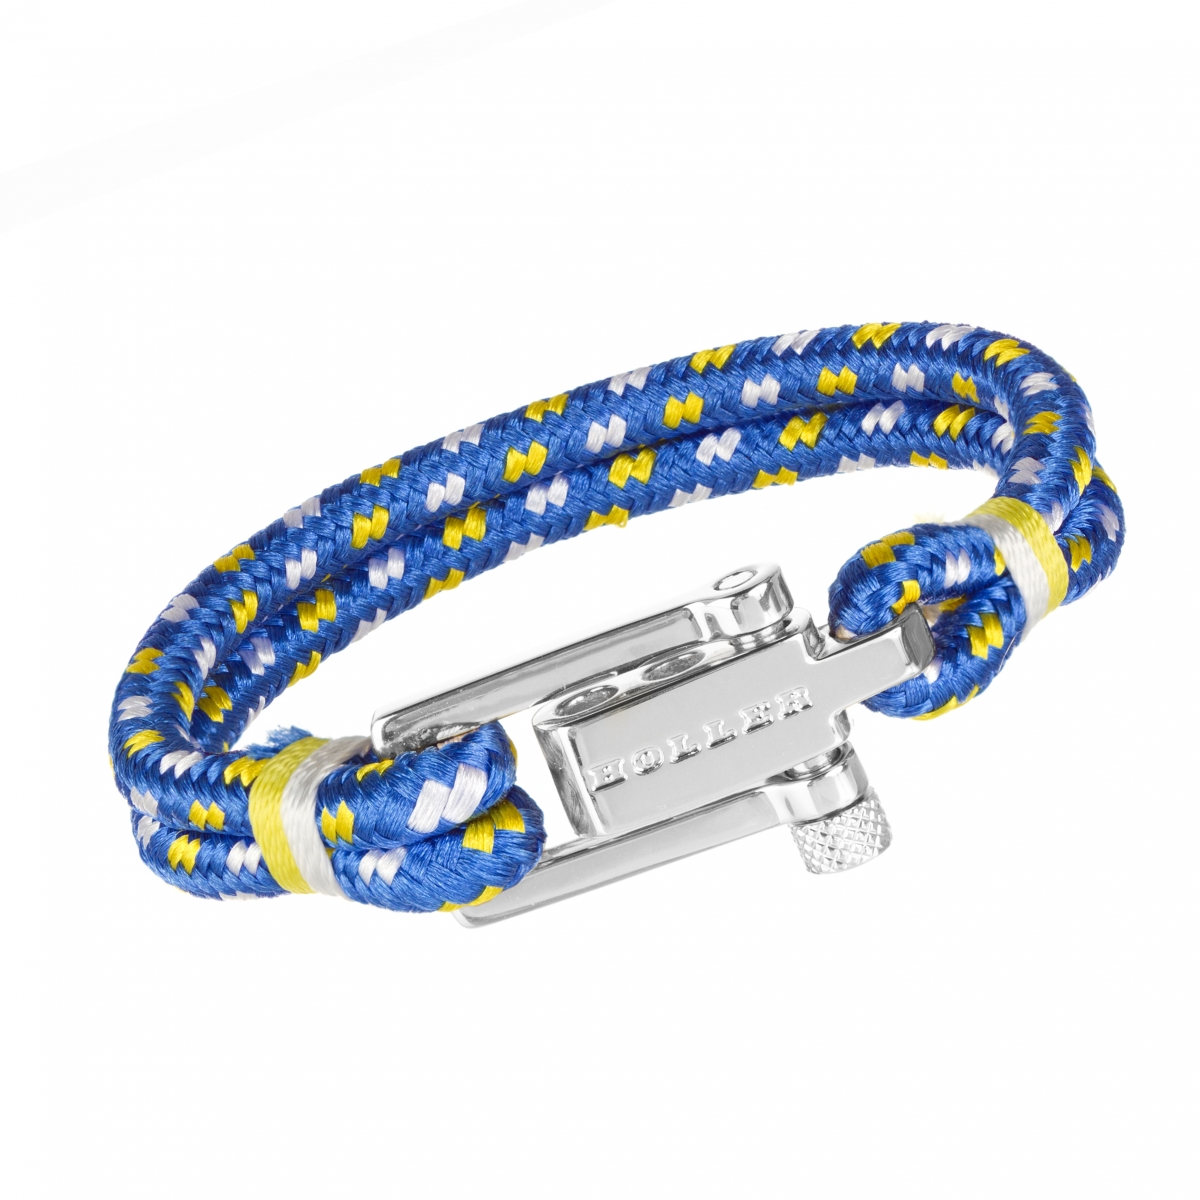 Mancha  Silver Polished U-Buckle / Blue, White and Yellow Paracord Bracelet